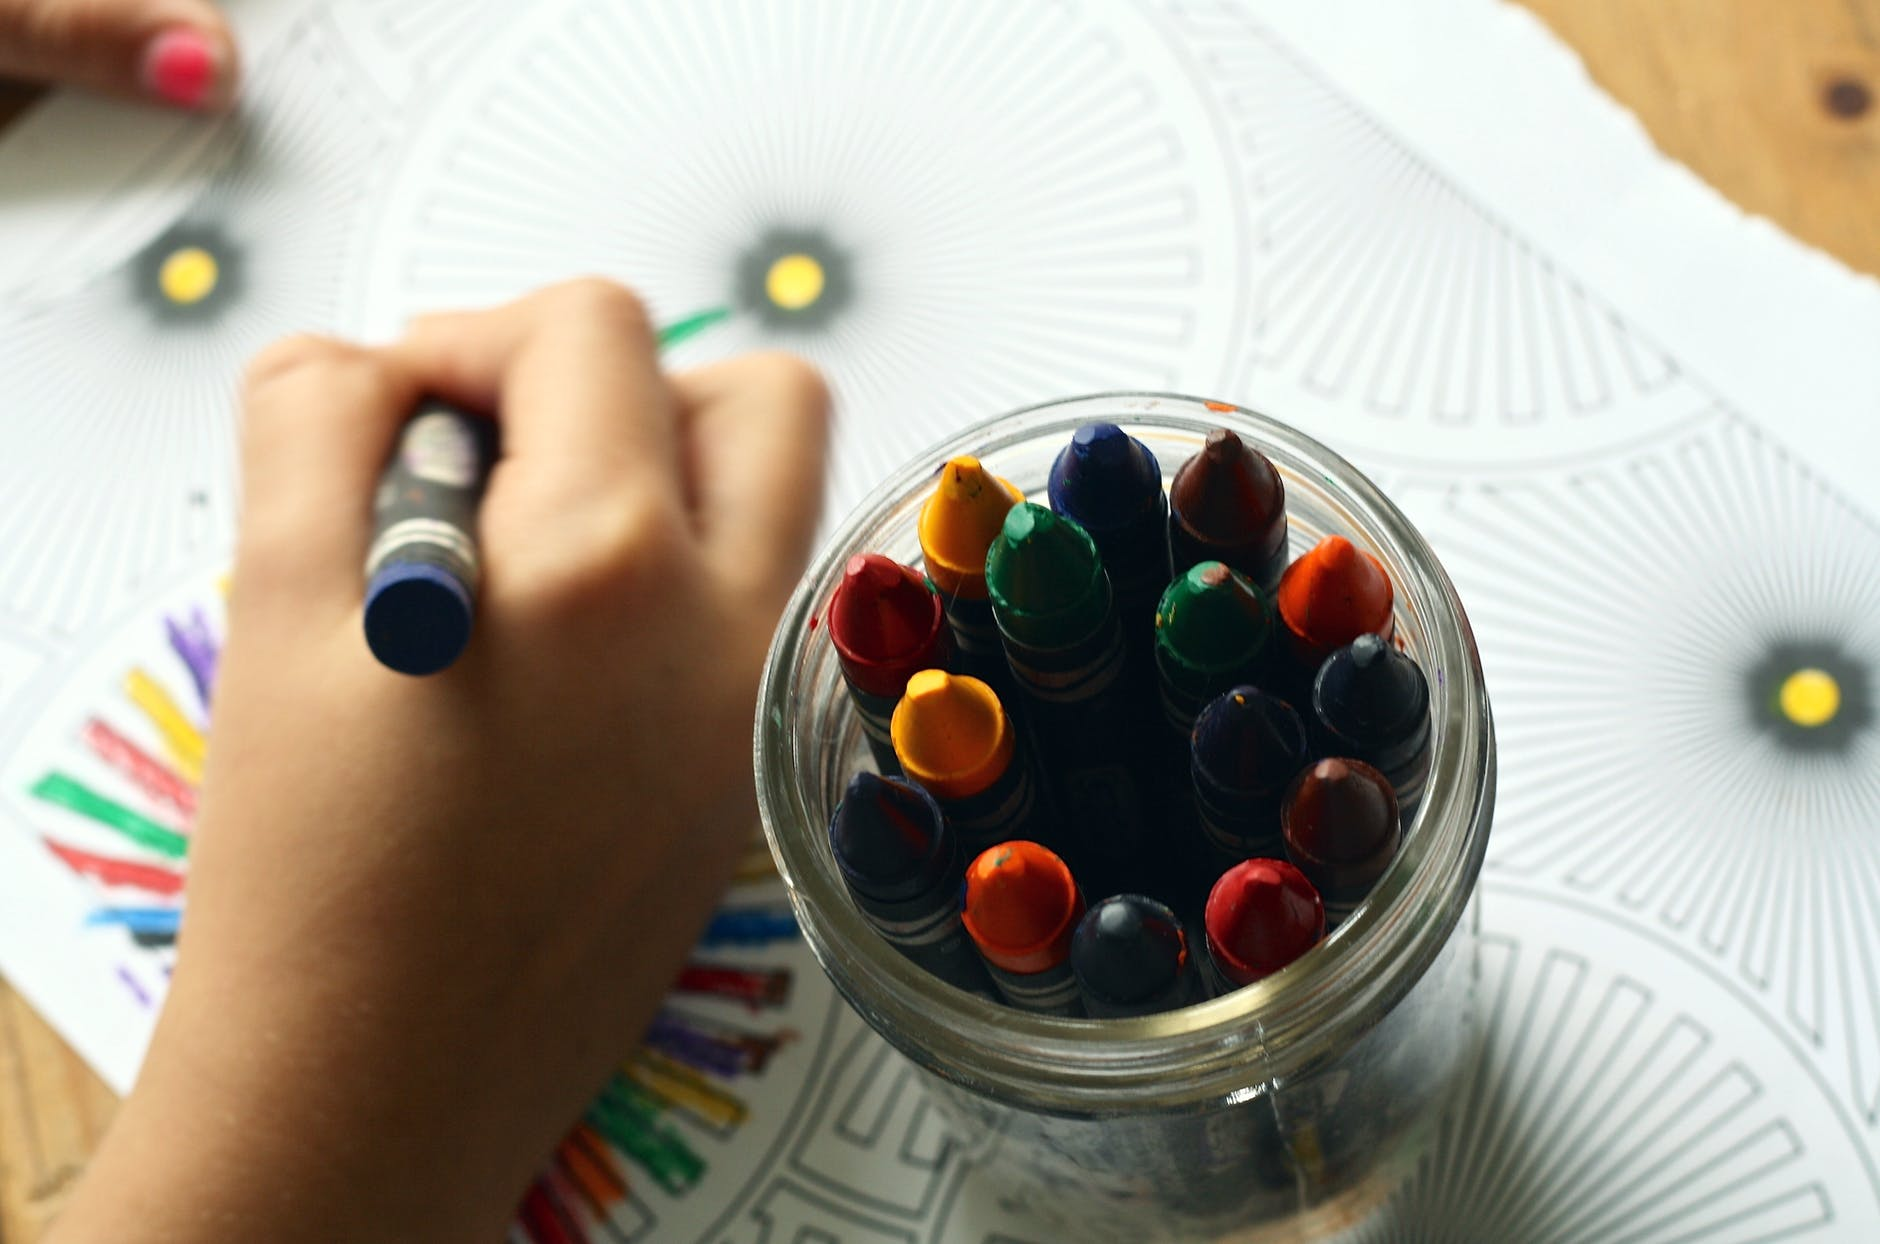 child's hand holding a crayon coloring on a piece of paper